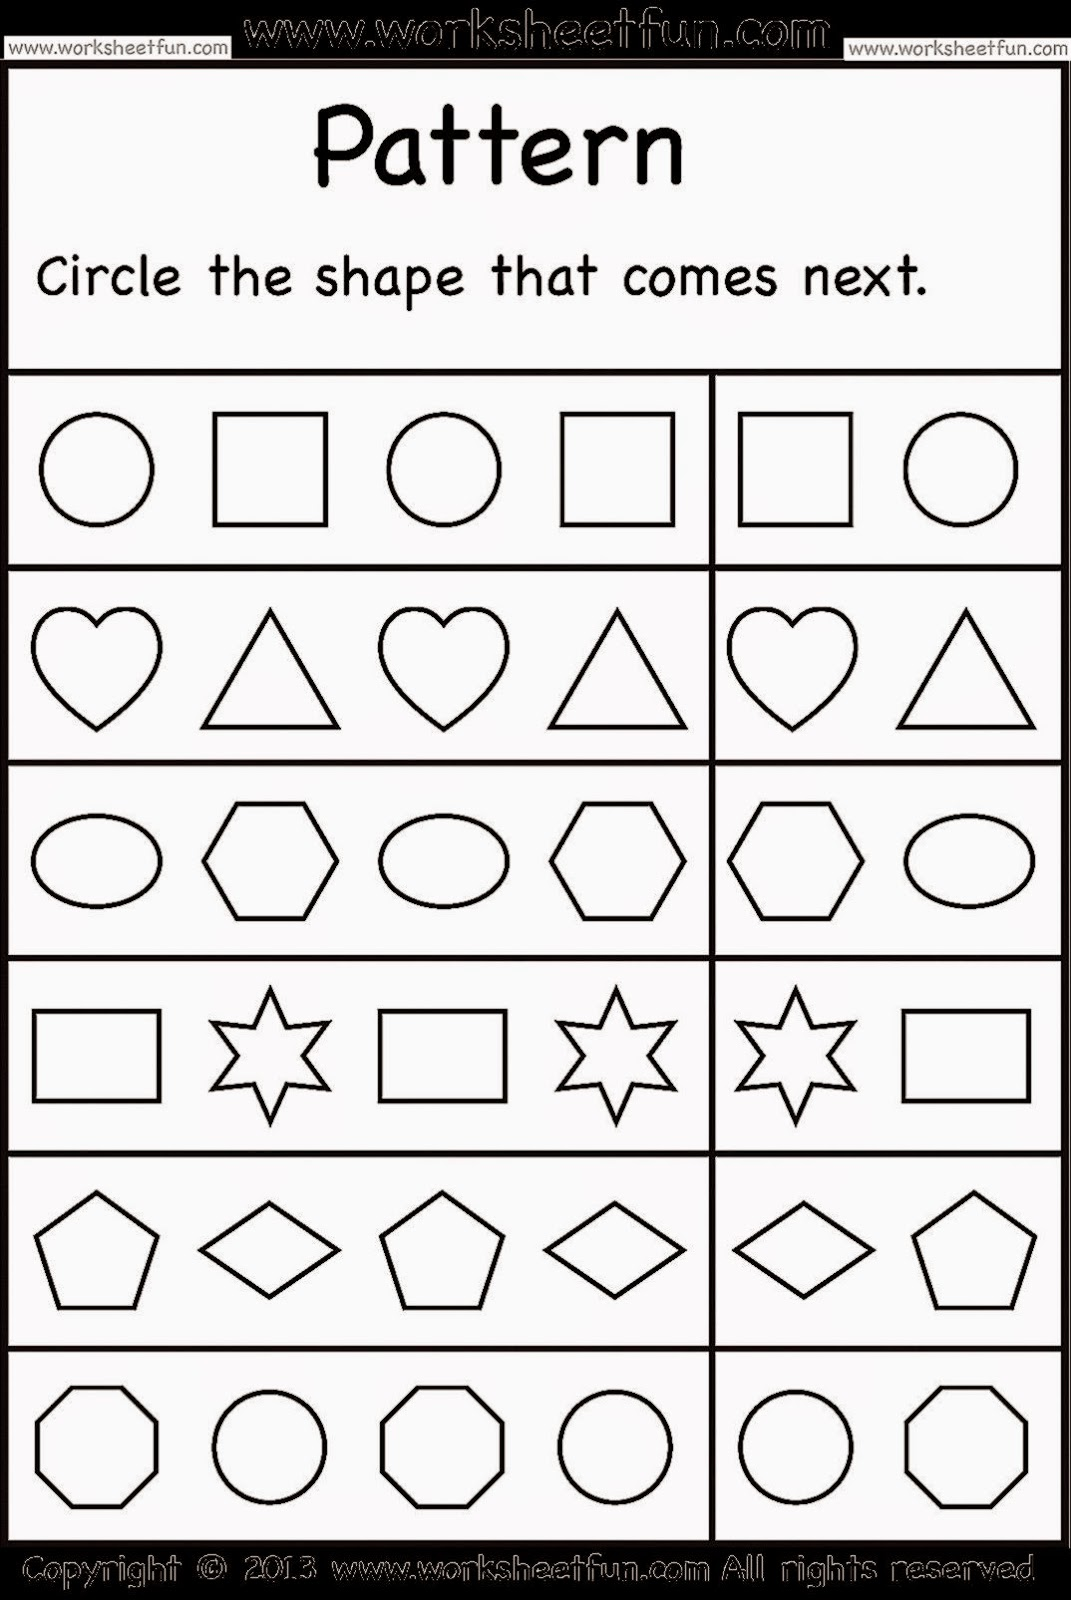 Printables Free Printable Kindergarten Phonics Worksheets kindergarten phonics worksheets printable free intrepidpath top worksheets